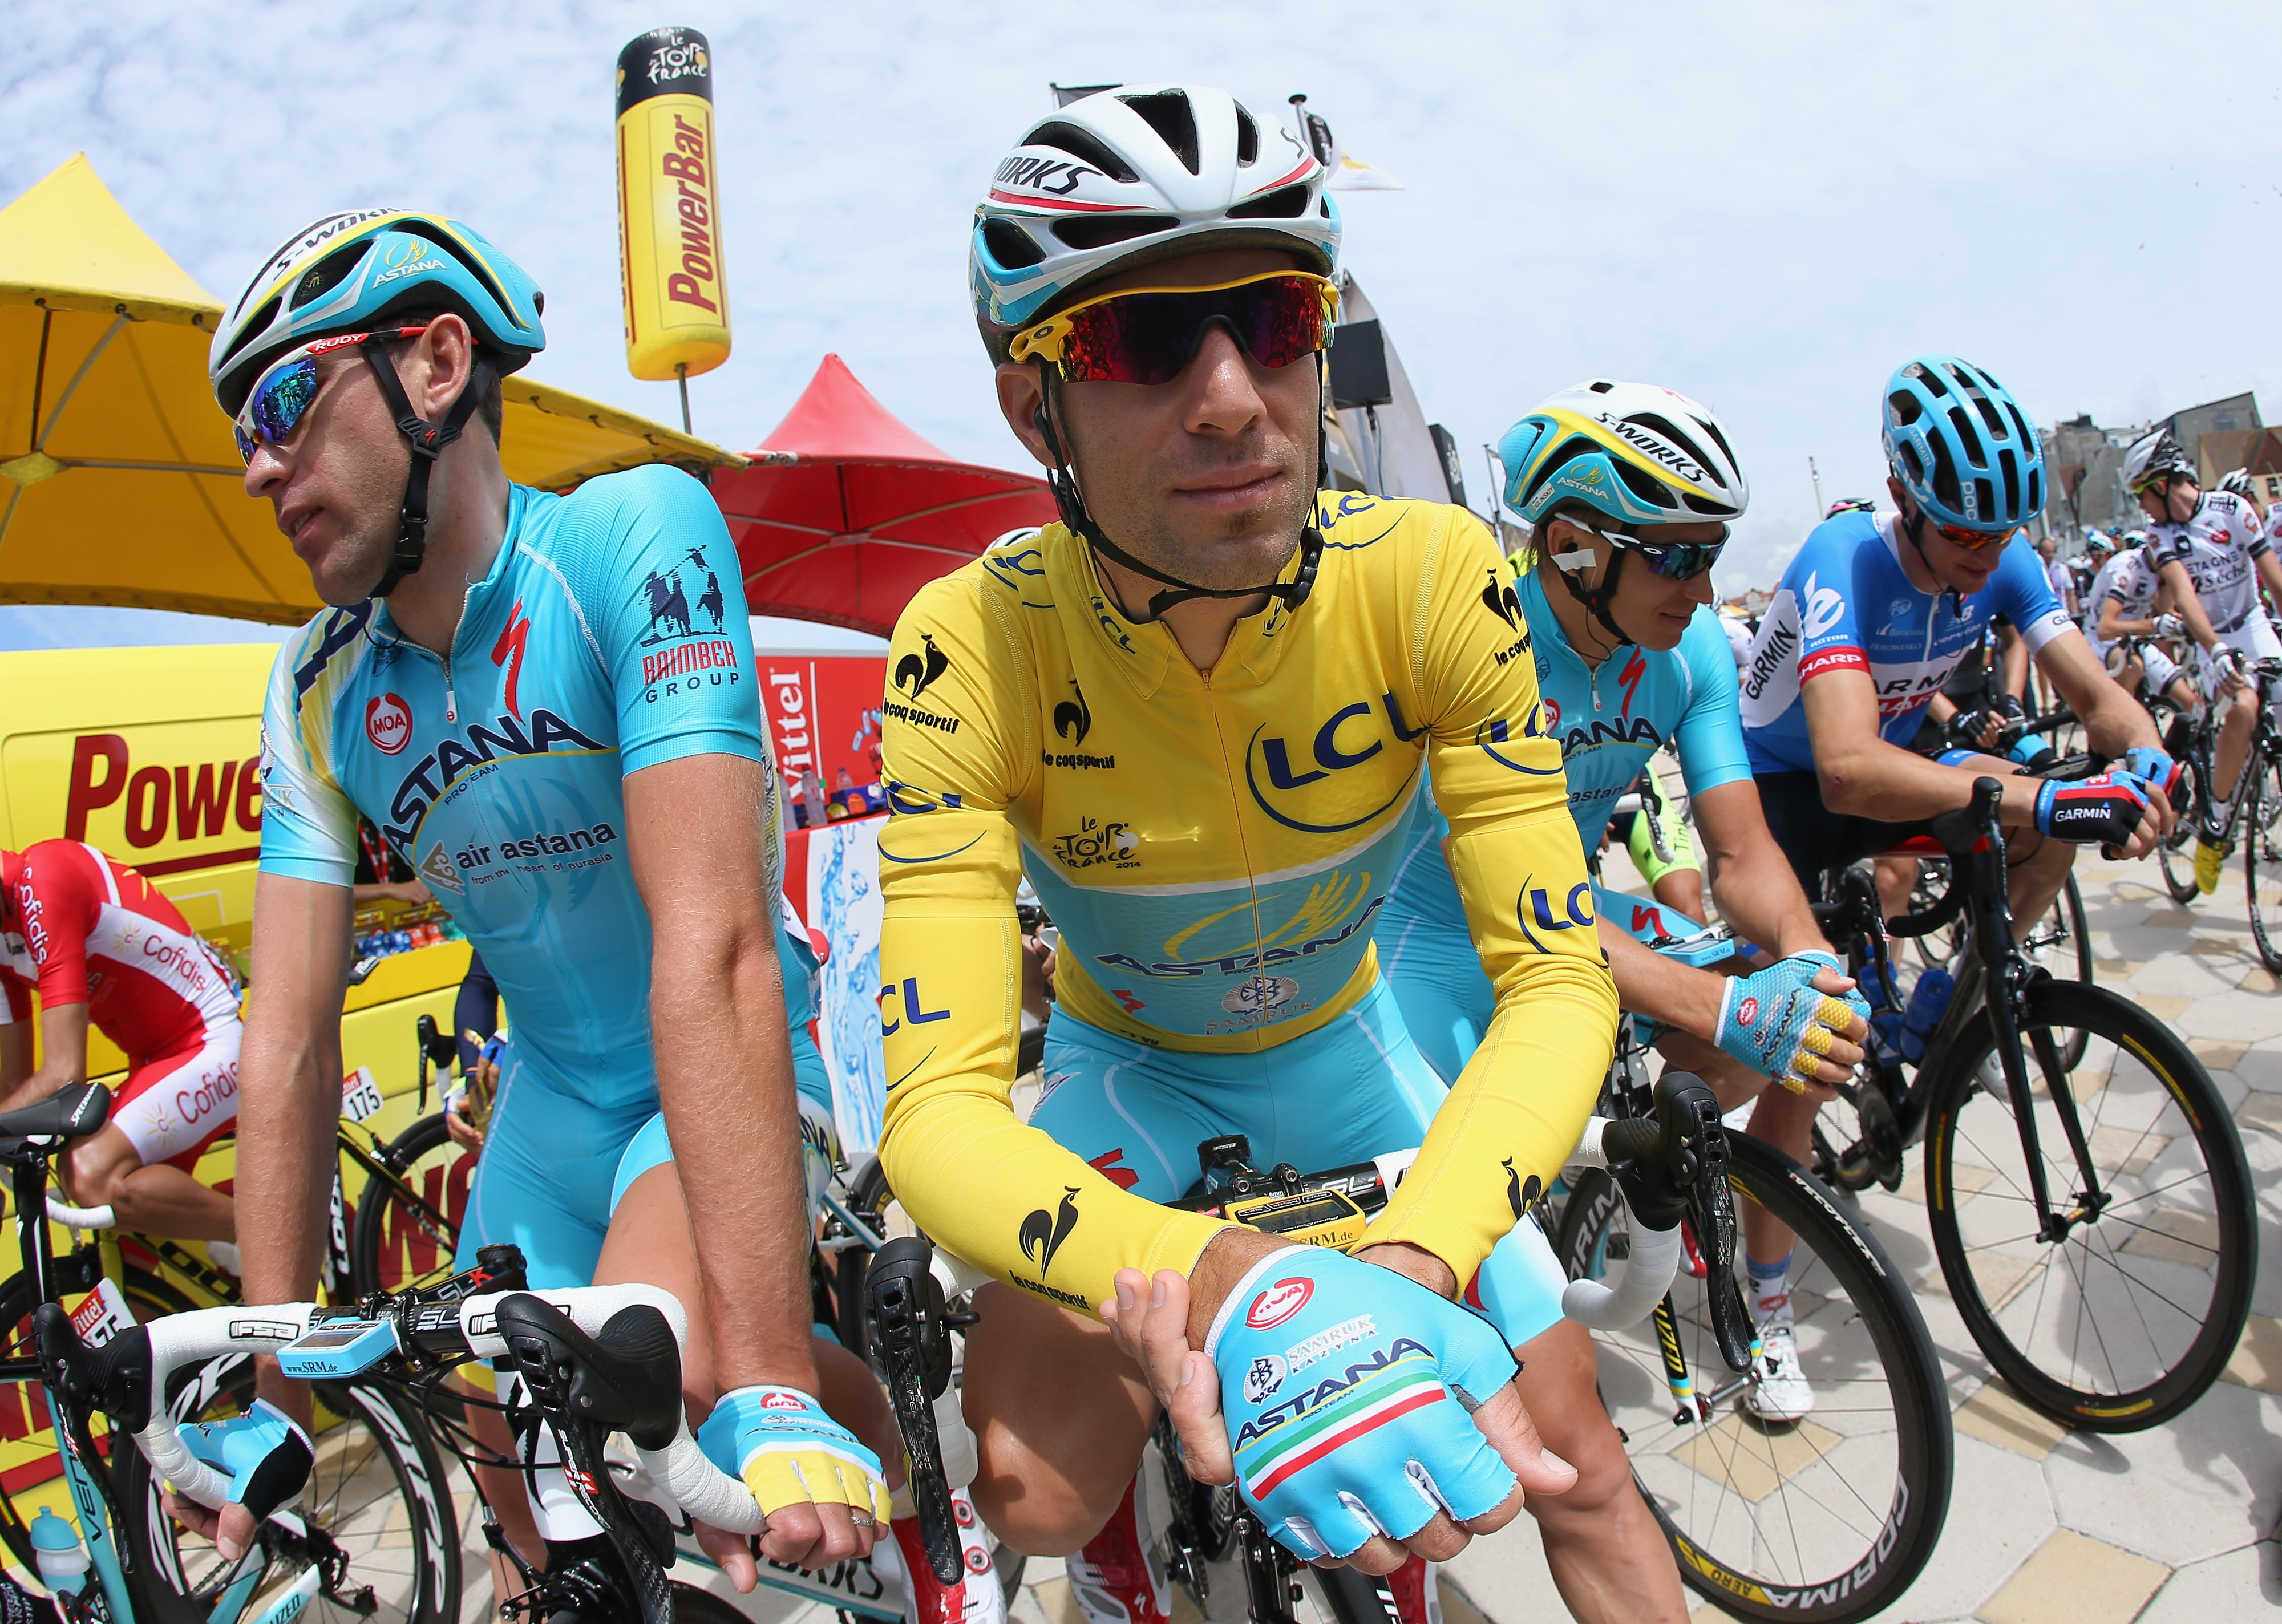 Tour de France 2014, Stage 5: Route, TV schedule and more